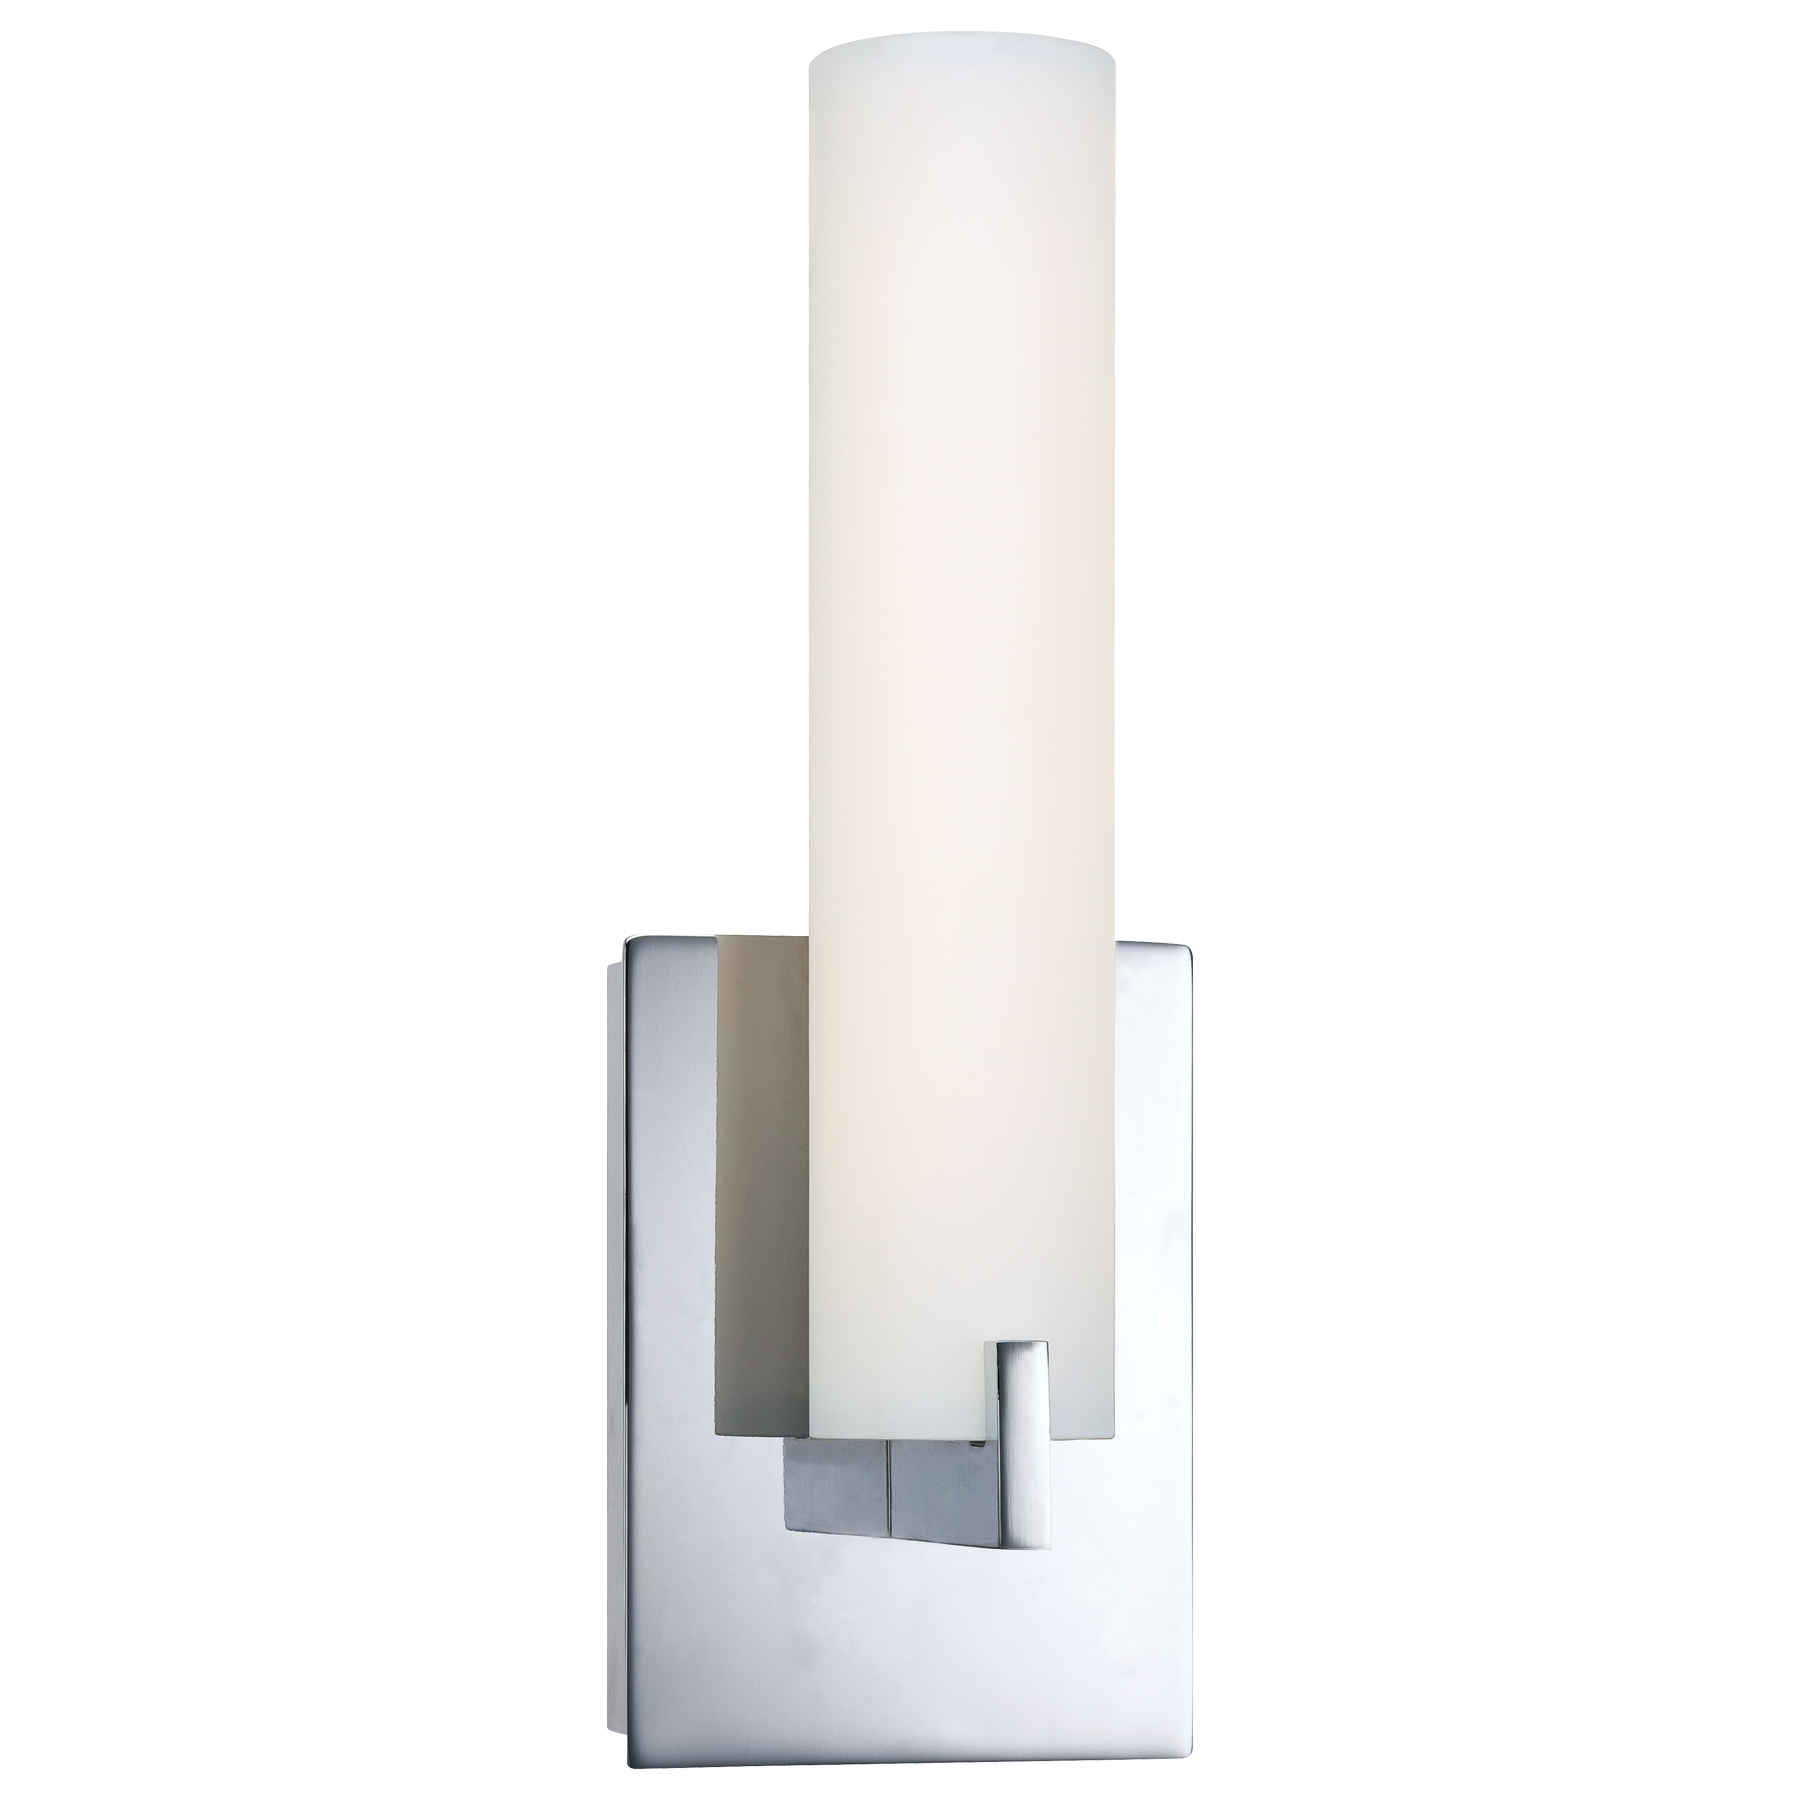 Tube led vanity wall sconce by george kovacs p5040 077 l for Contemporary bathroom wall sconces